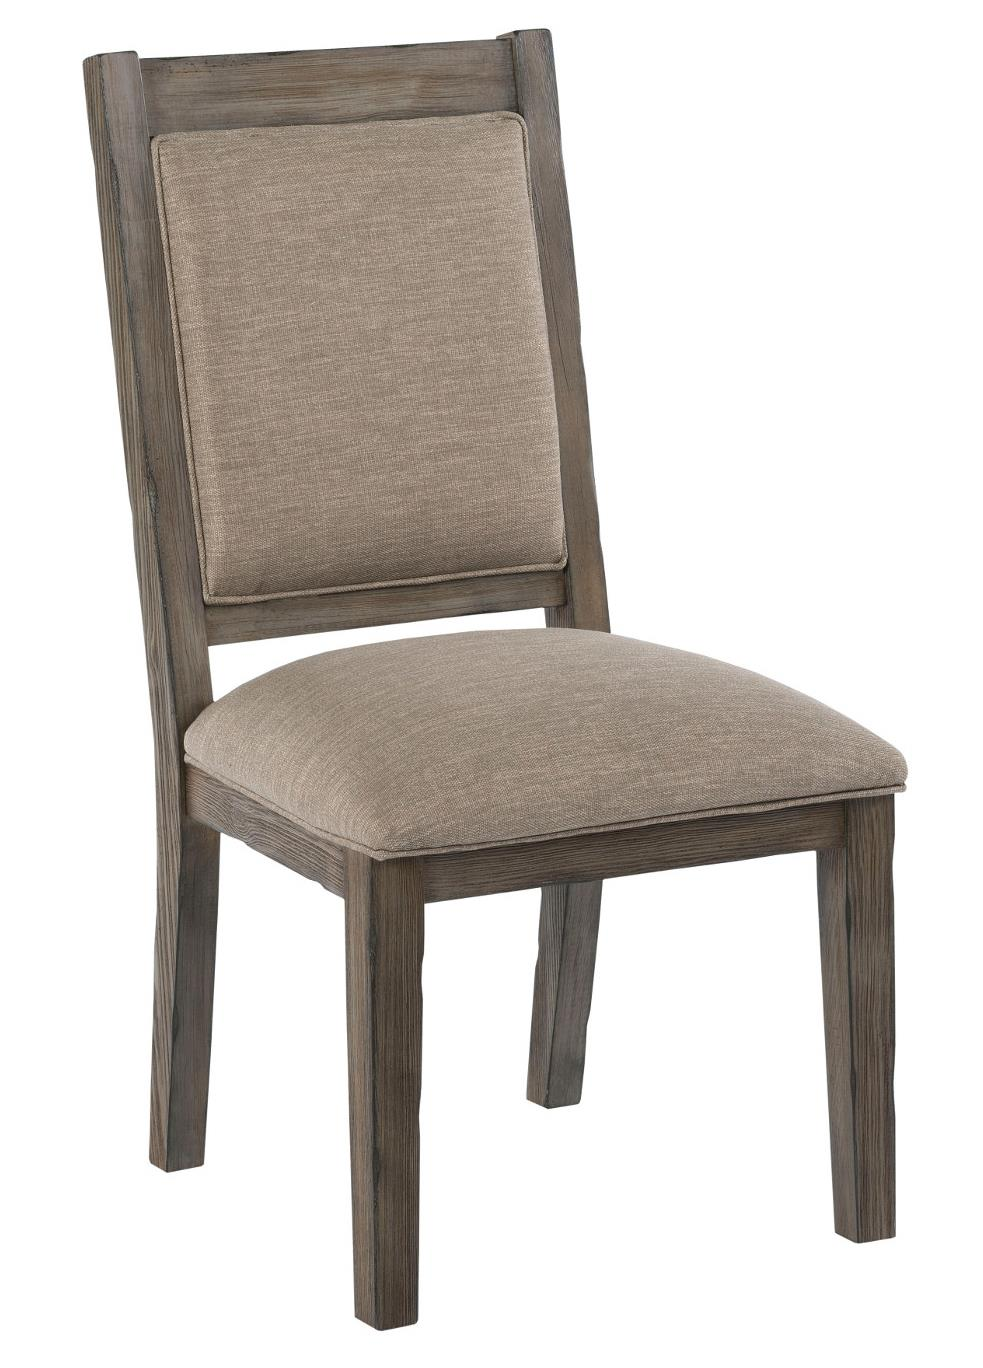 Foundry Upholstered Side Chair by Kincaid Furniture at Northeast Factory Direct